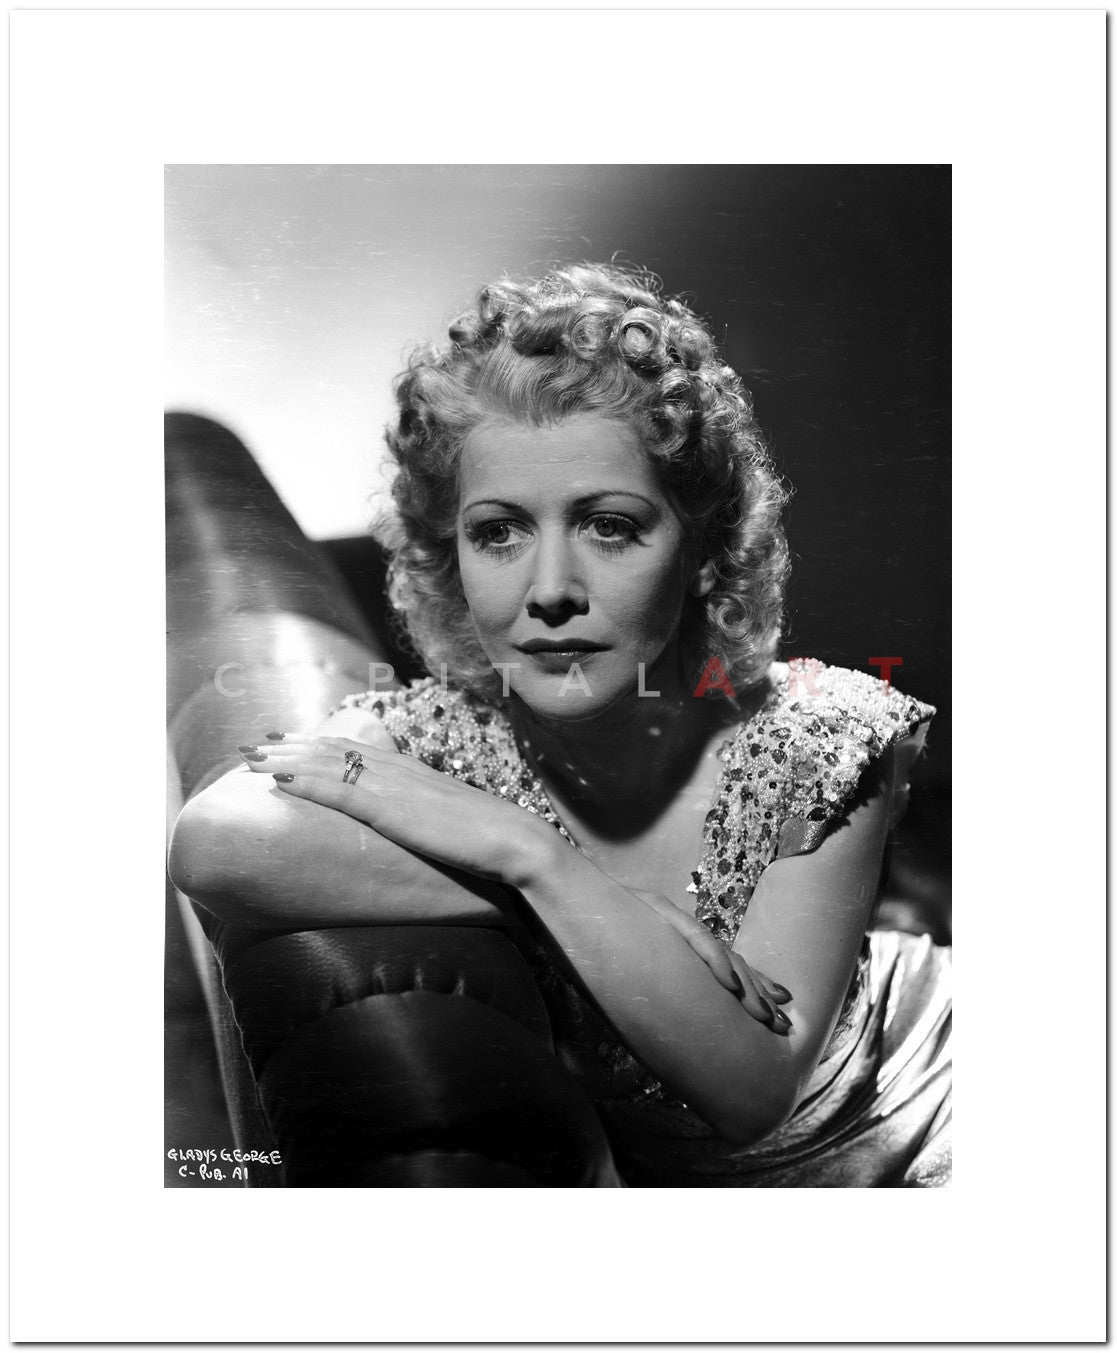 pictures Gladys George